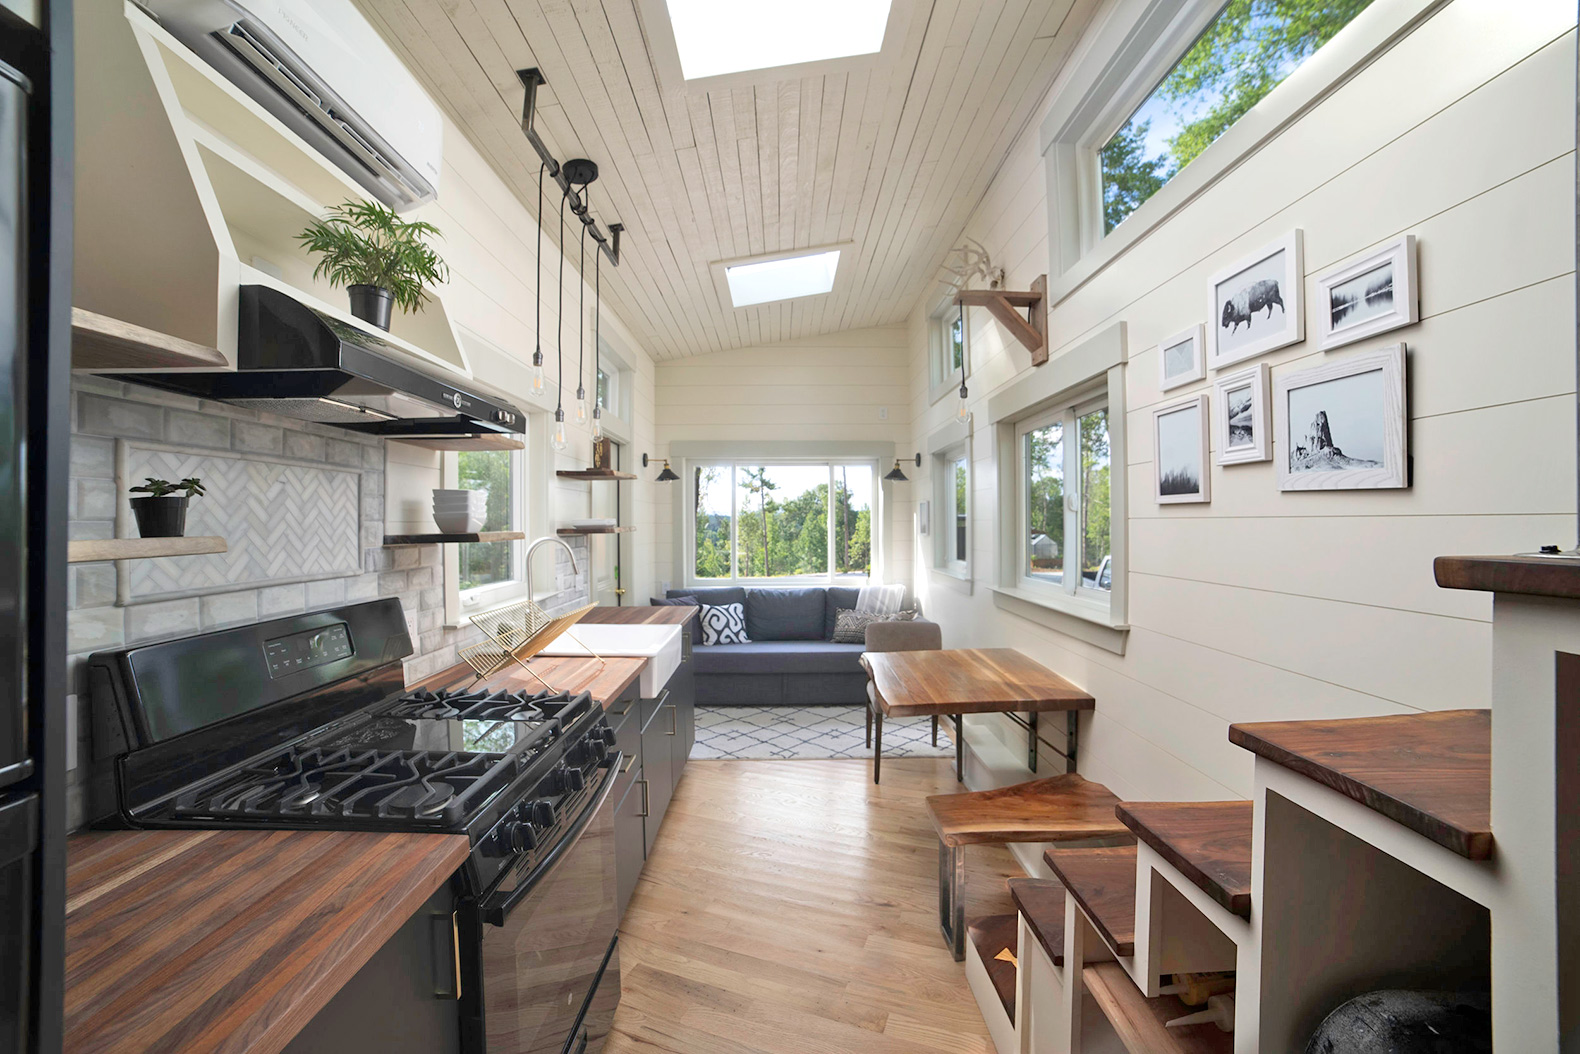 This light-filled tiny house is made almost entirely of reclaimed wood